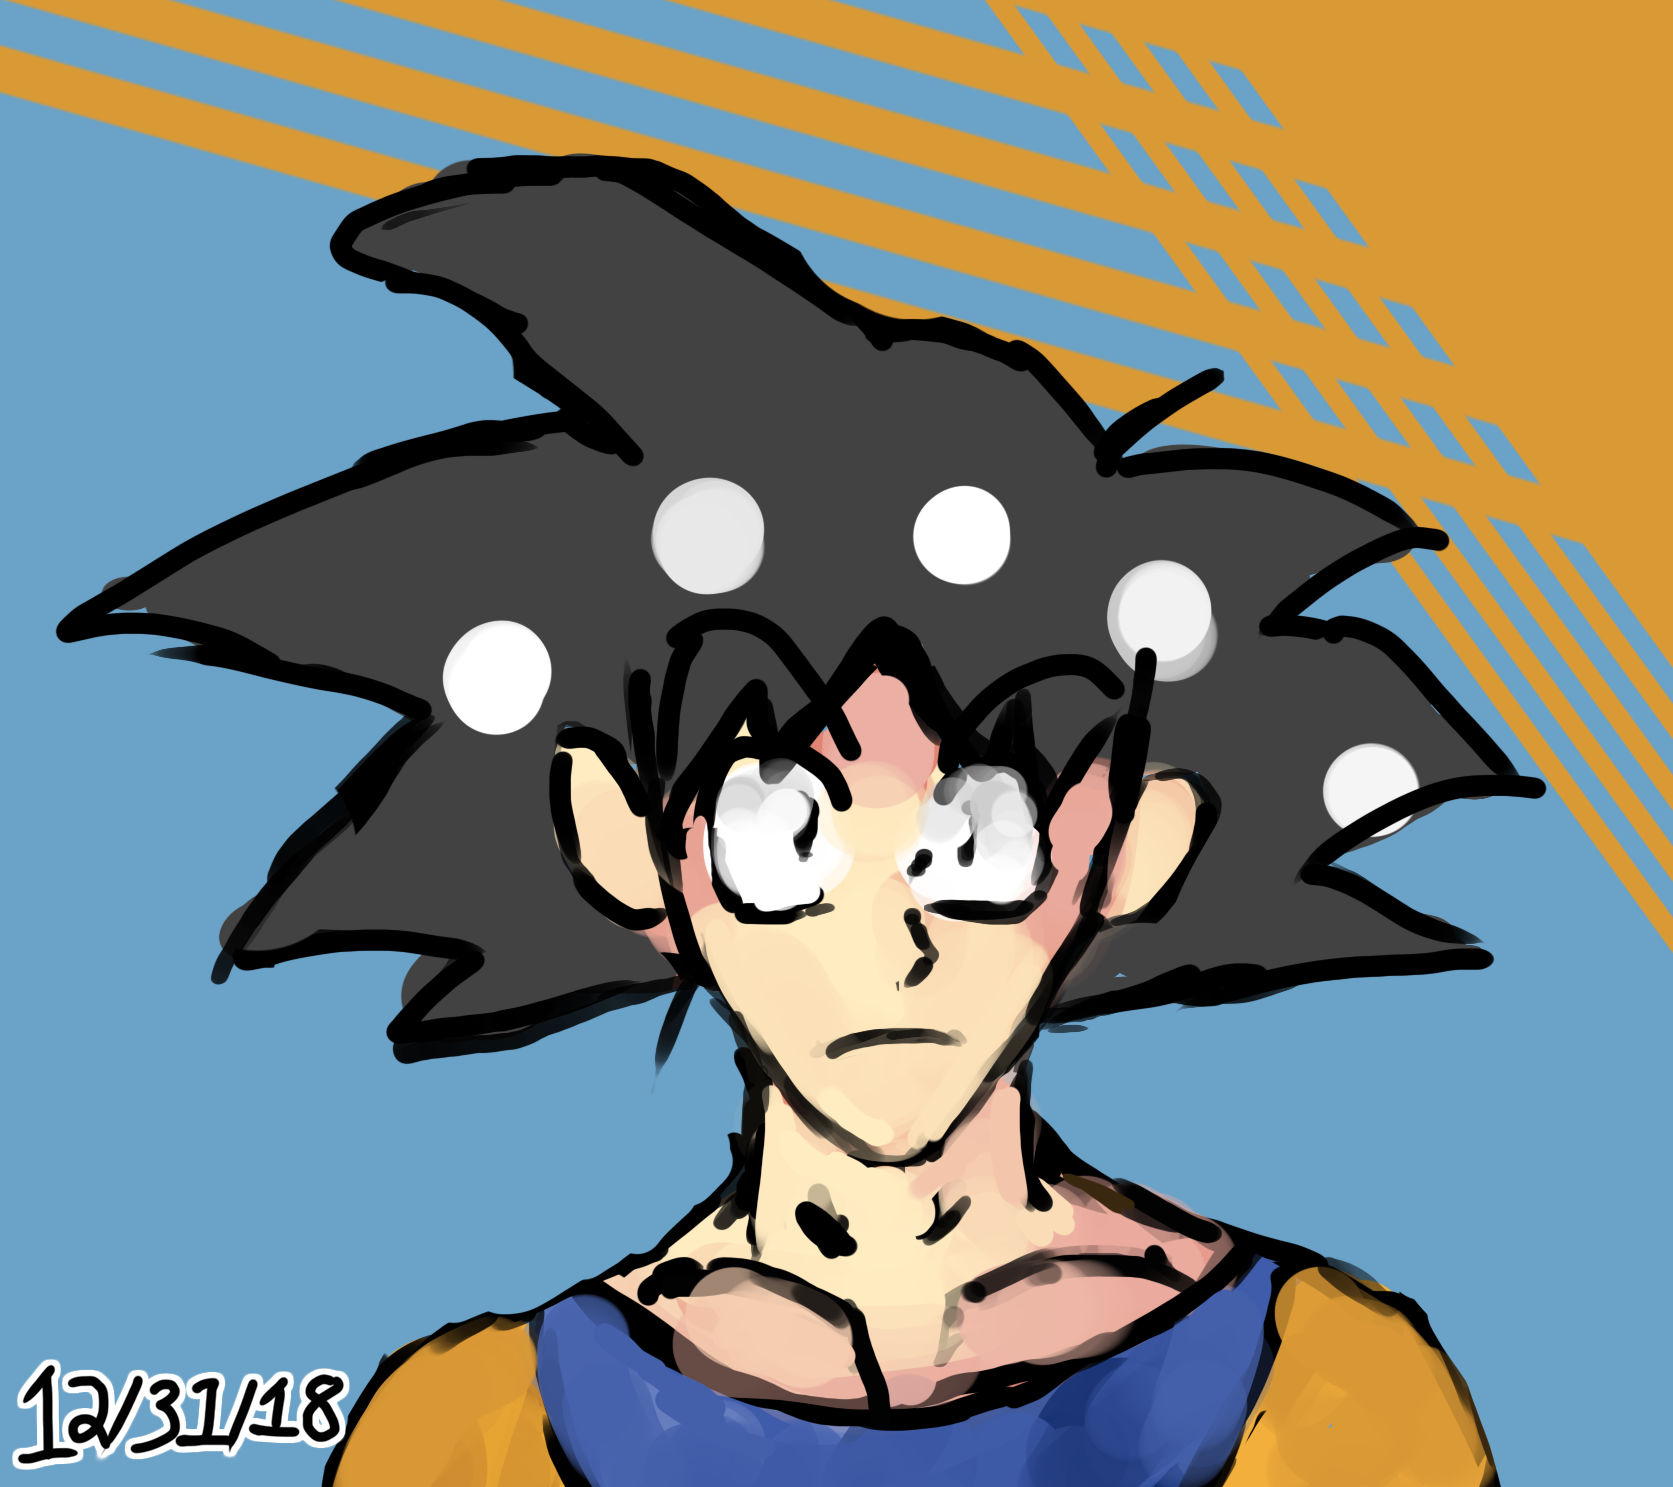 Dragon Ball's Goku